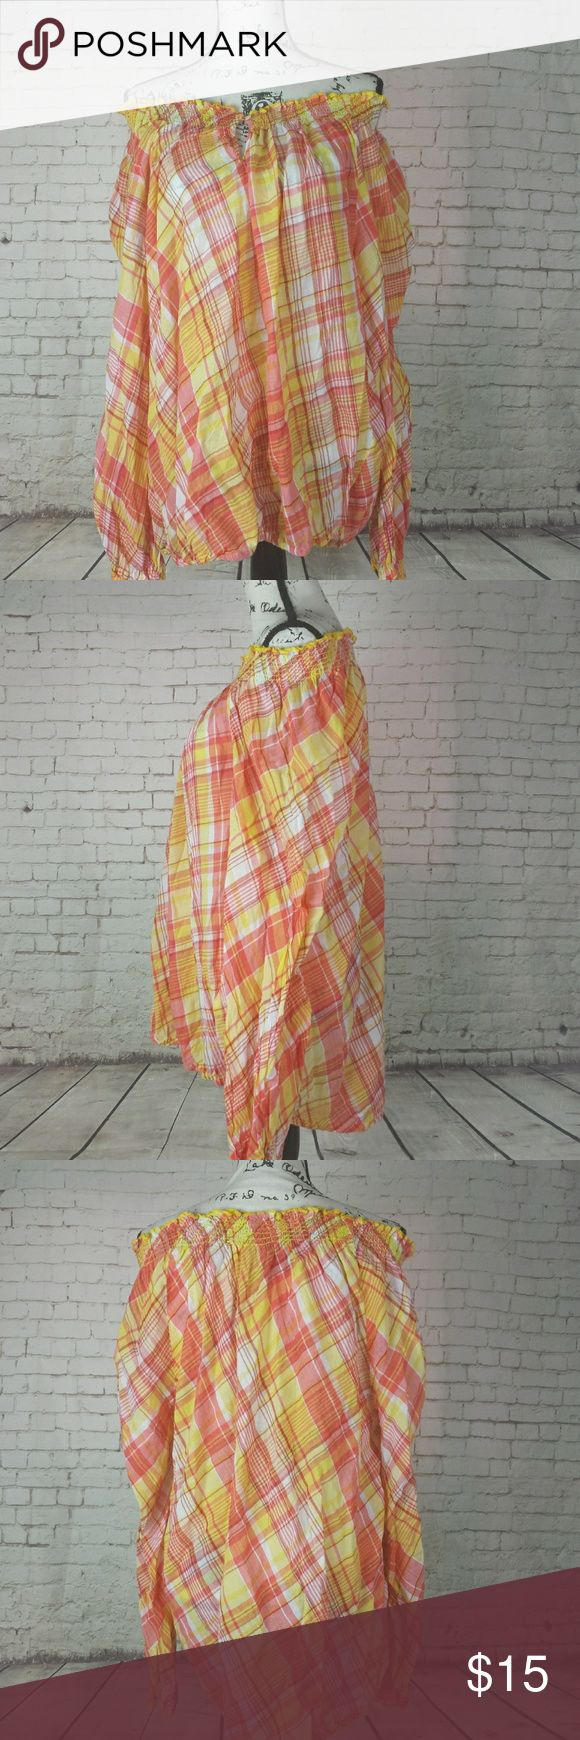 "Lane Bryant Size 26/28 Semi Sheer Orange Plaid Top Lane Bryant Size 26/28 Semi Sheer Orange Yellow Plaid Long Sleeve Smocked Top off Shoulder Blouse  New without tags.  Label black lined to prevent store returns  Approximate measurements taken flat double when applicable  Chest 32"" Length 30"" Lane Bryant Tops Blouses"